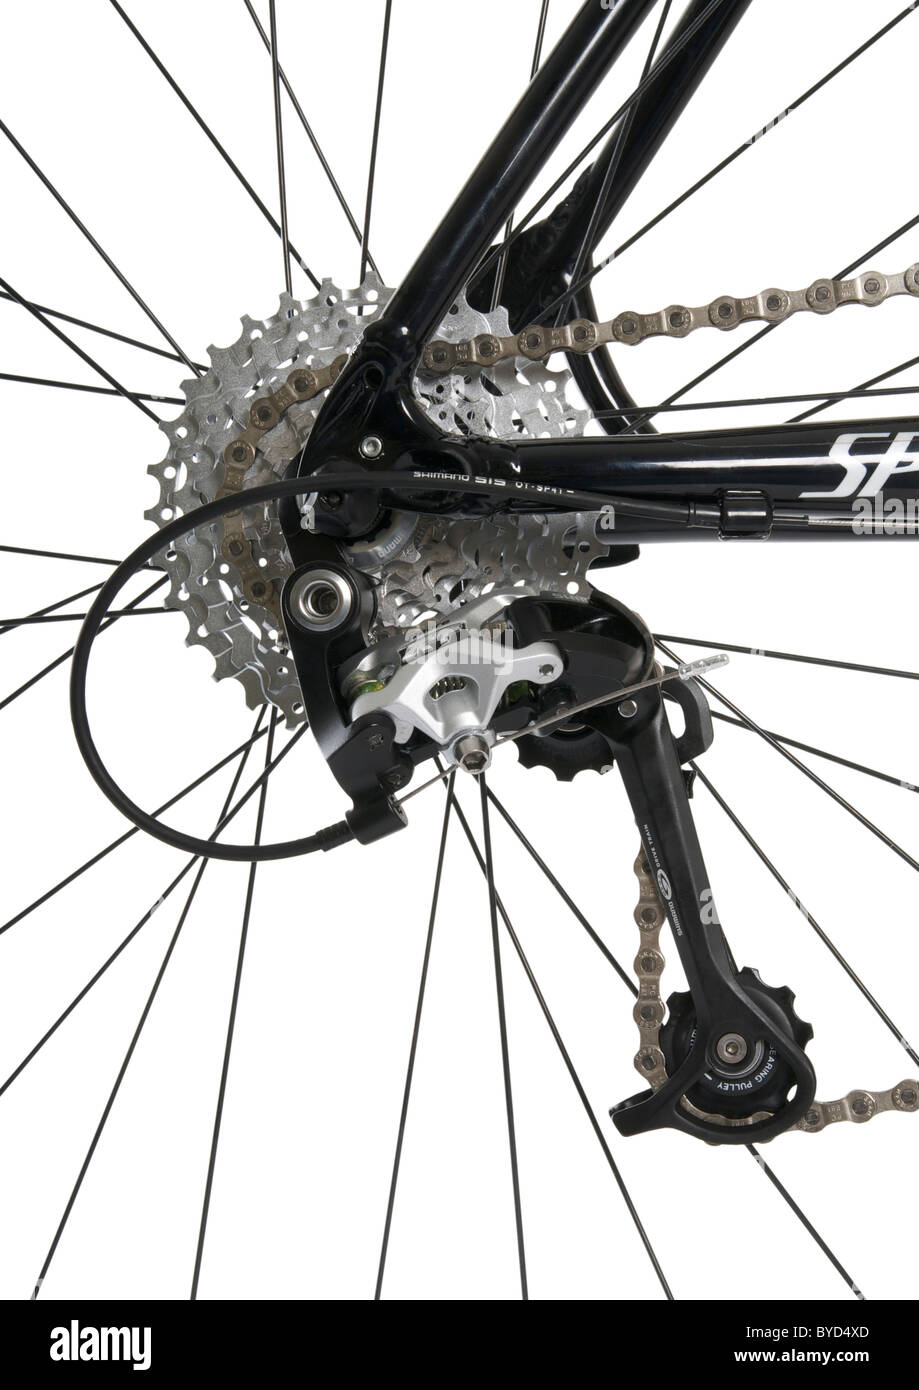 Mountain bike rear derailleur, chain and cassette on white background - Stock Image